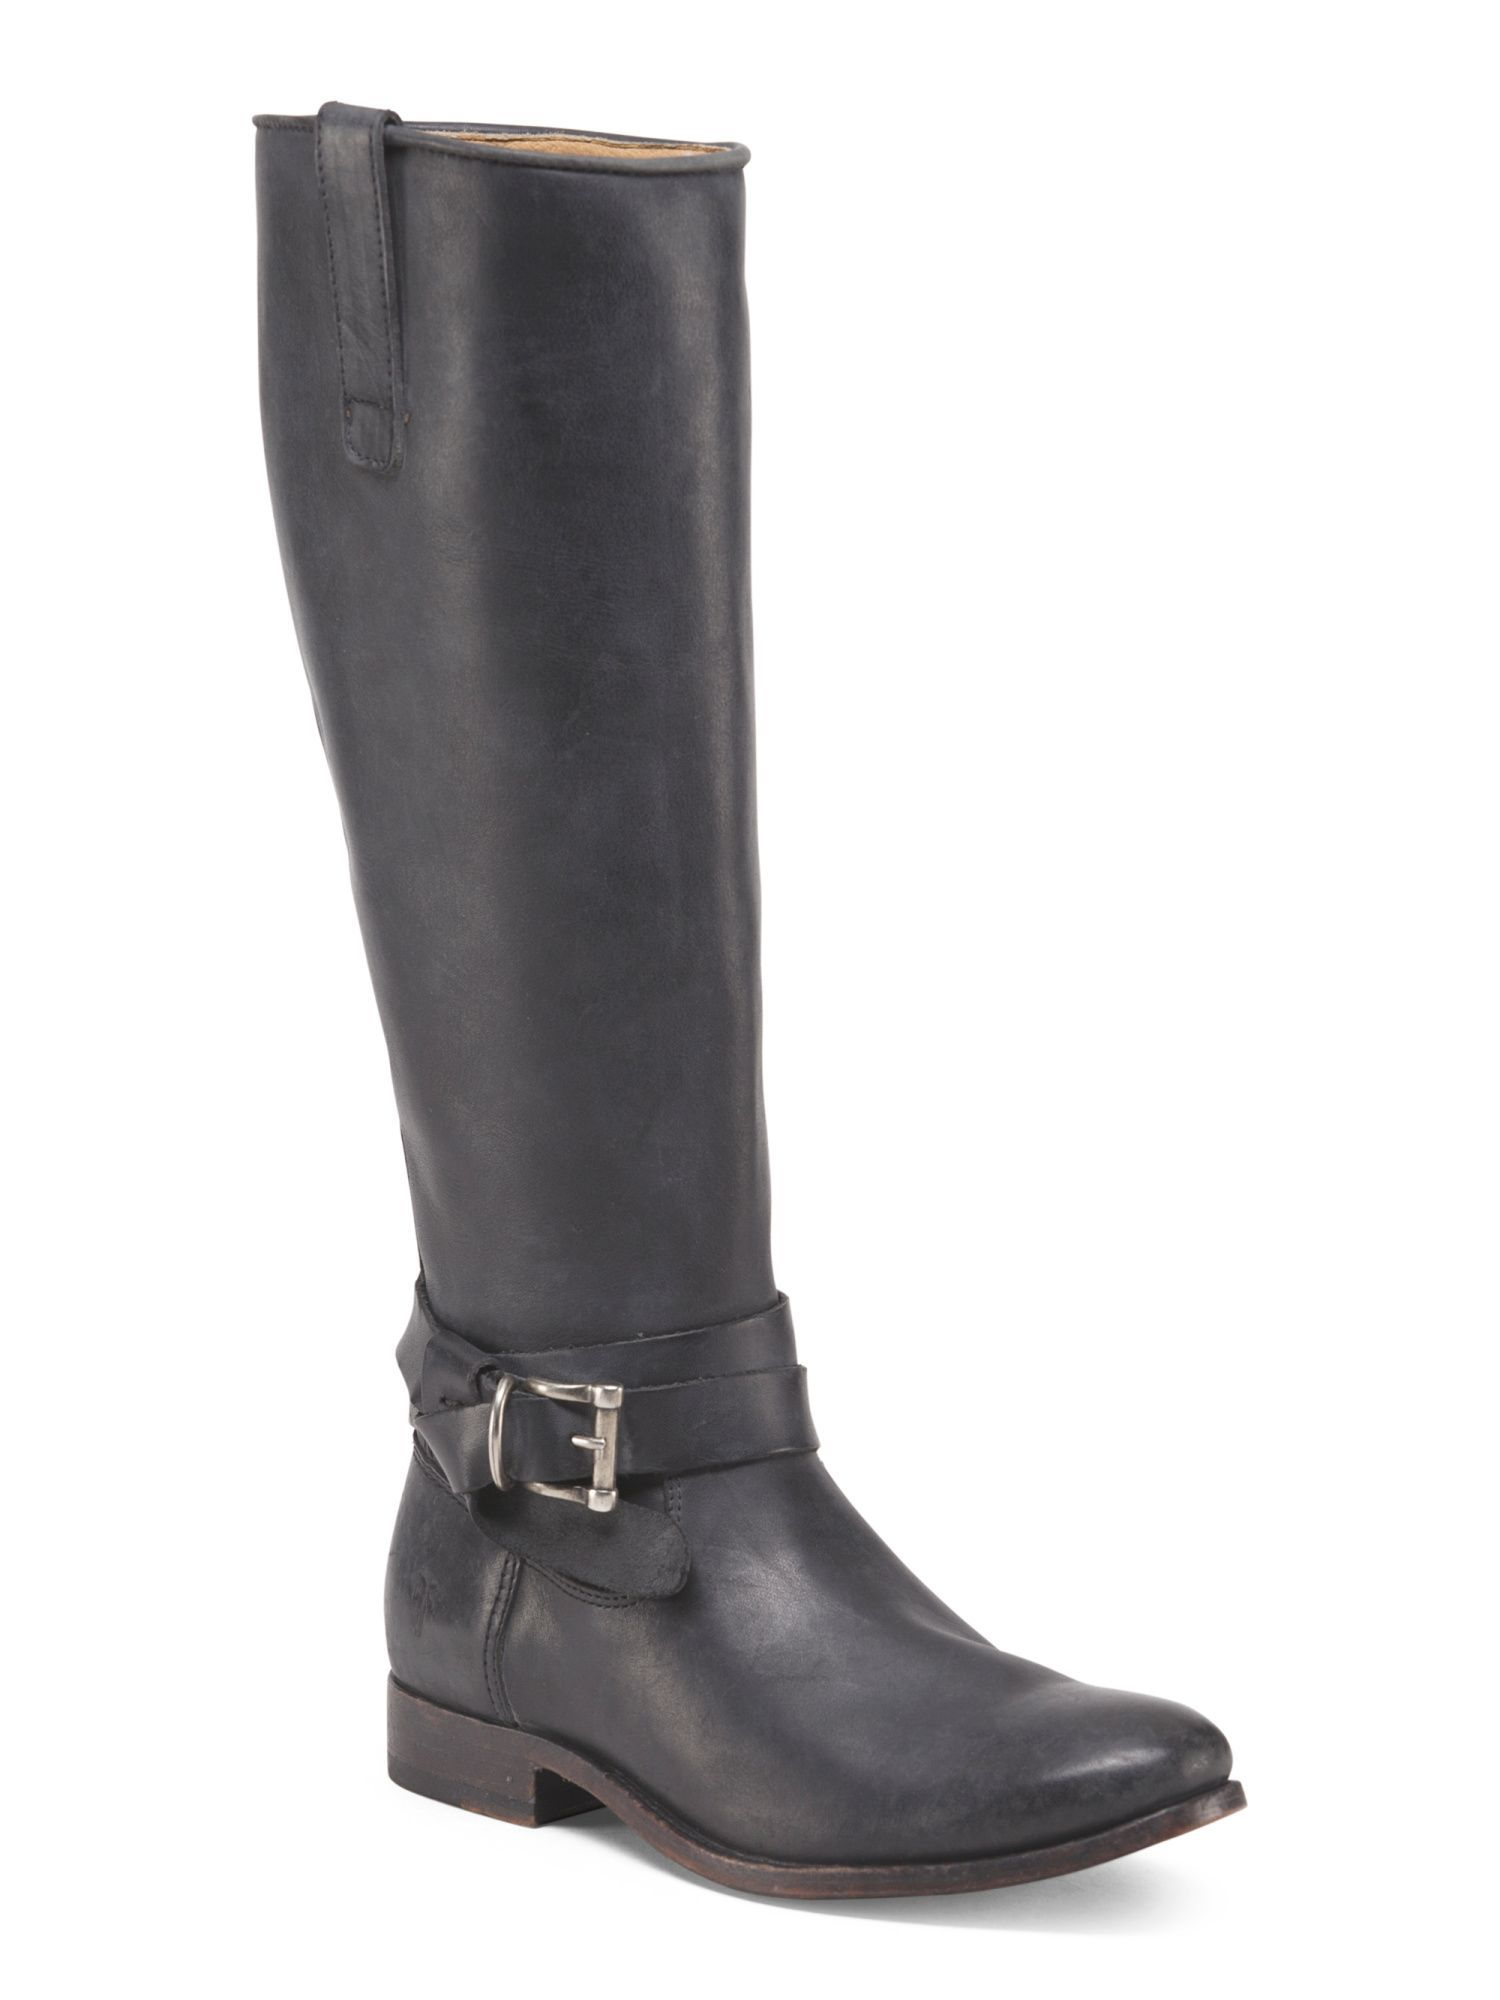 075bc6aaa515 Melissa Leather Riding Boots